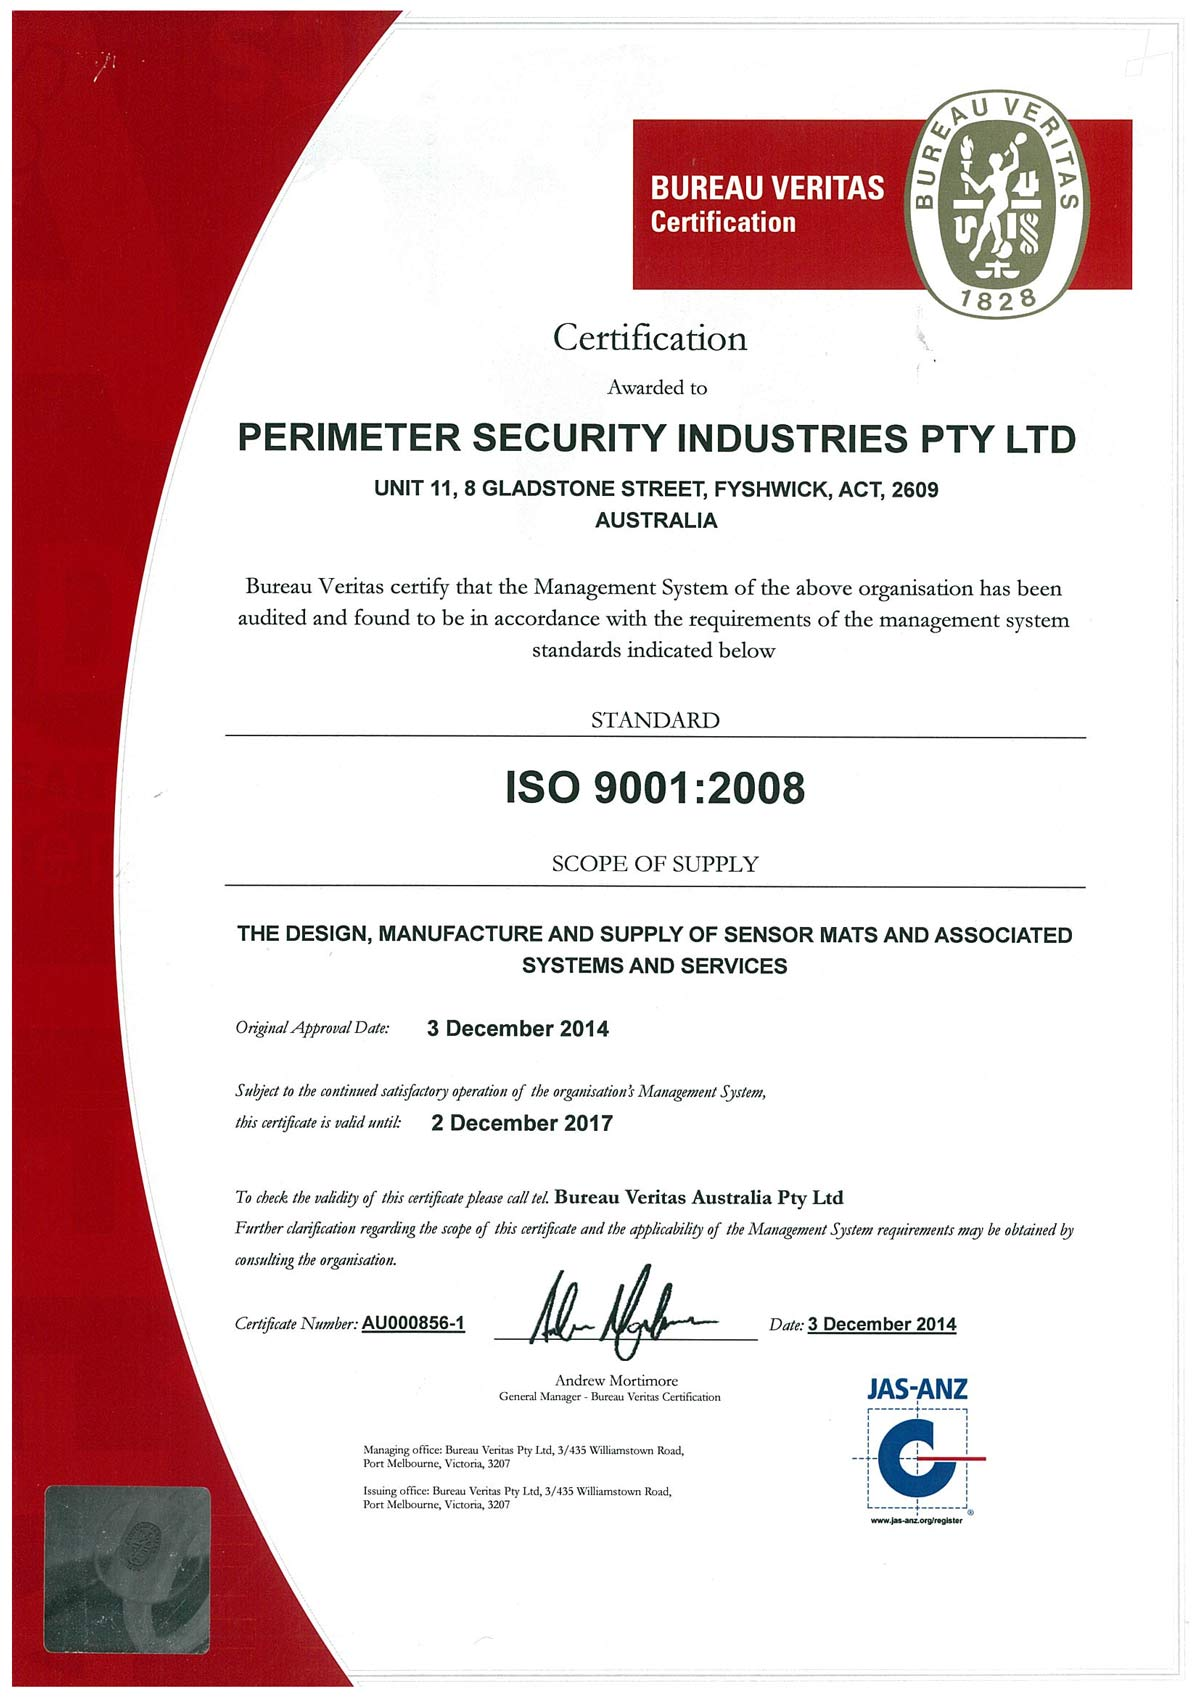 Psi Awarded Qa Certification Perimeter Security Industries